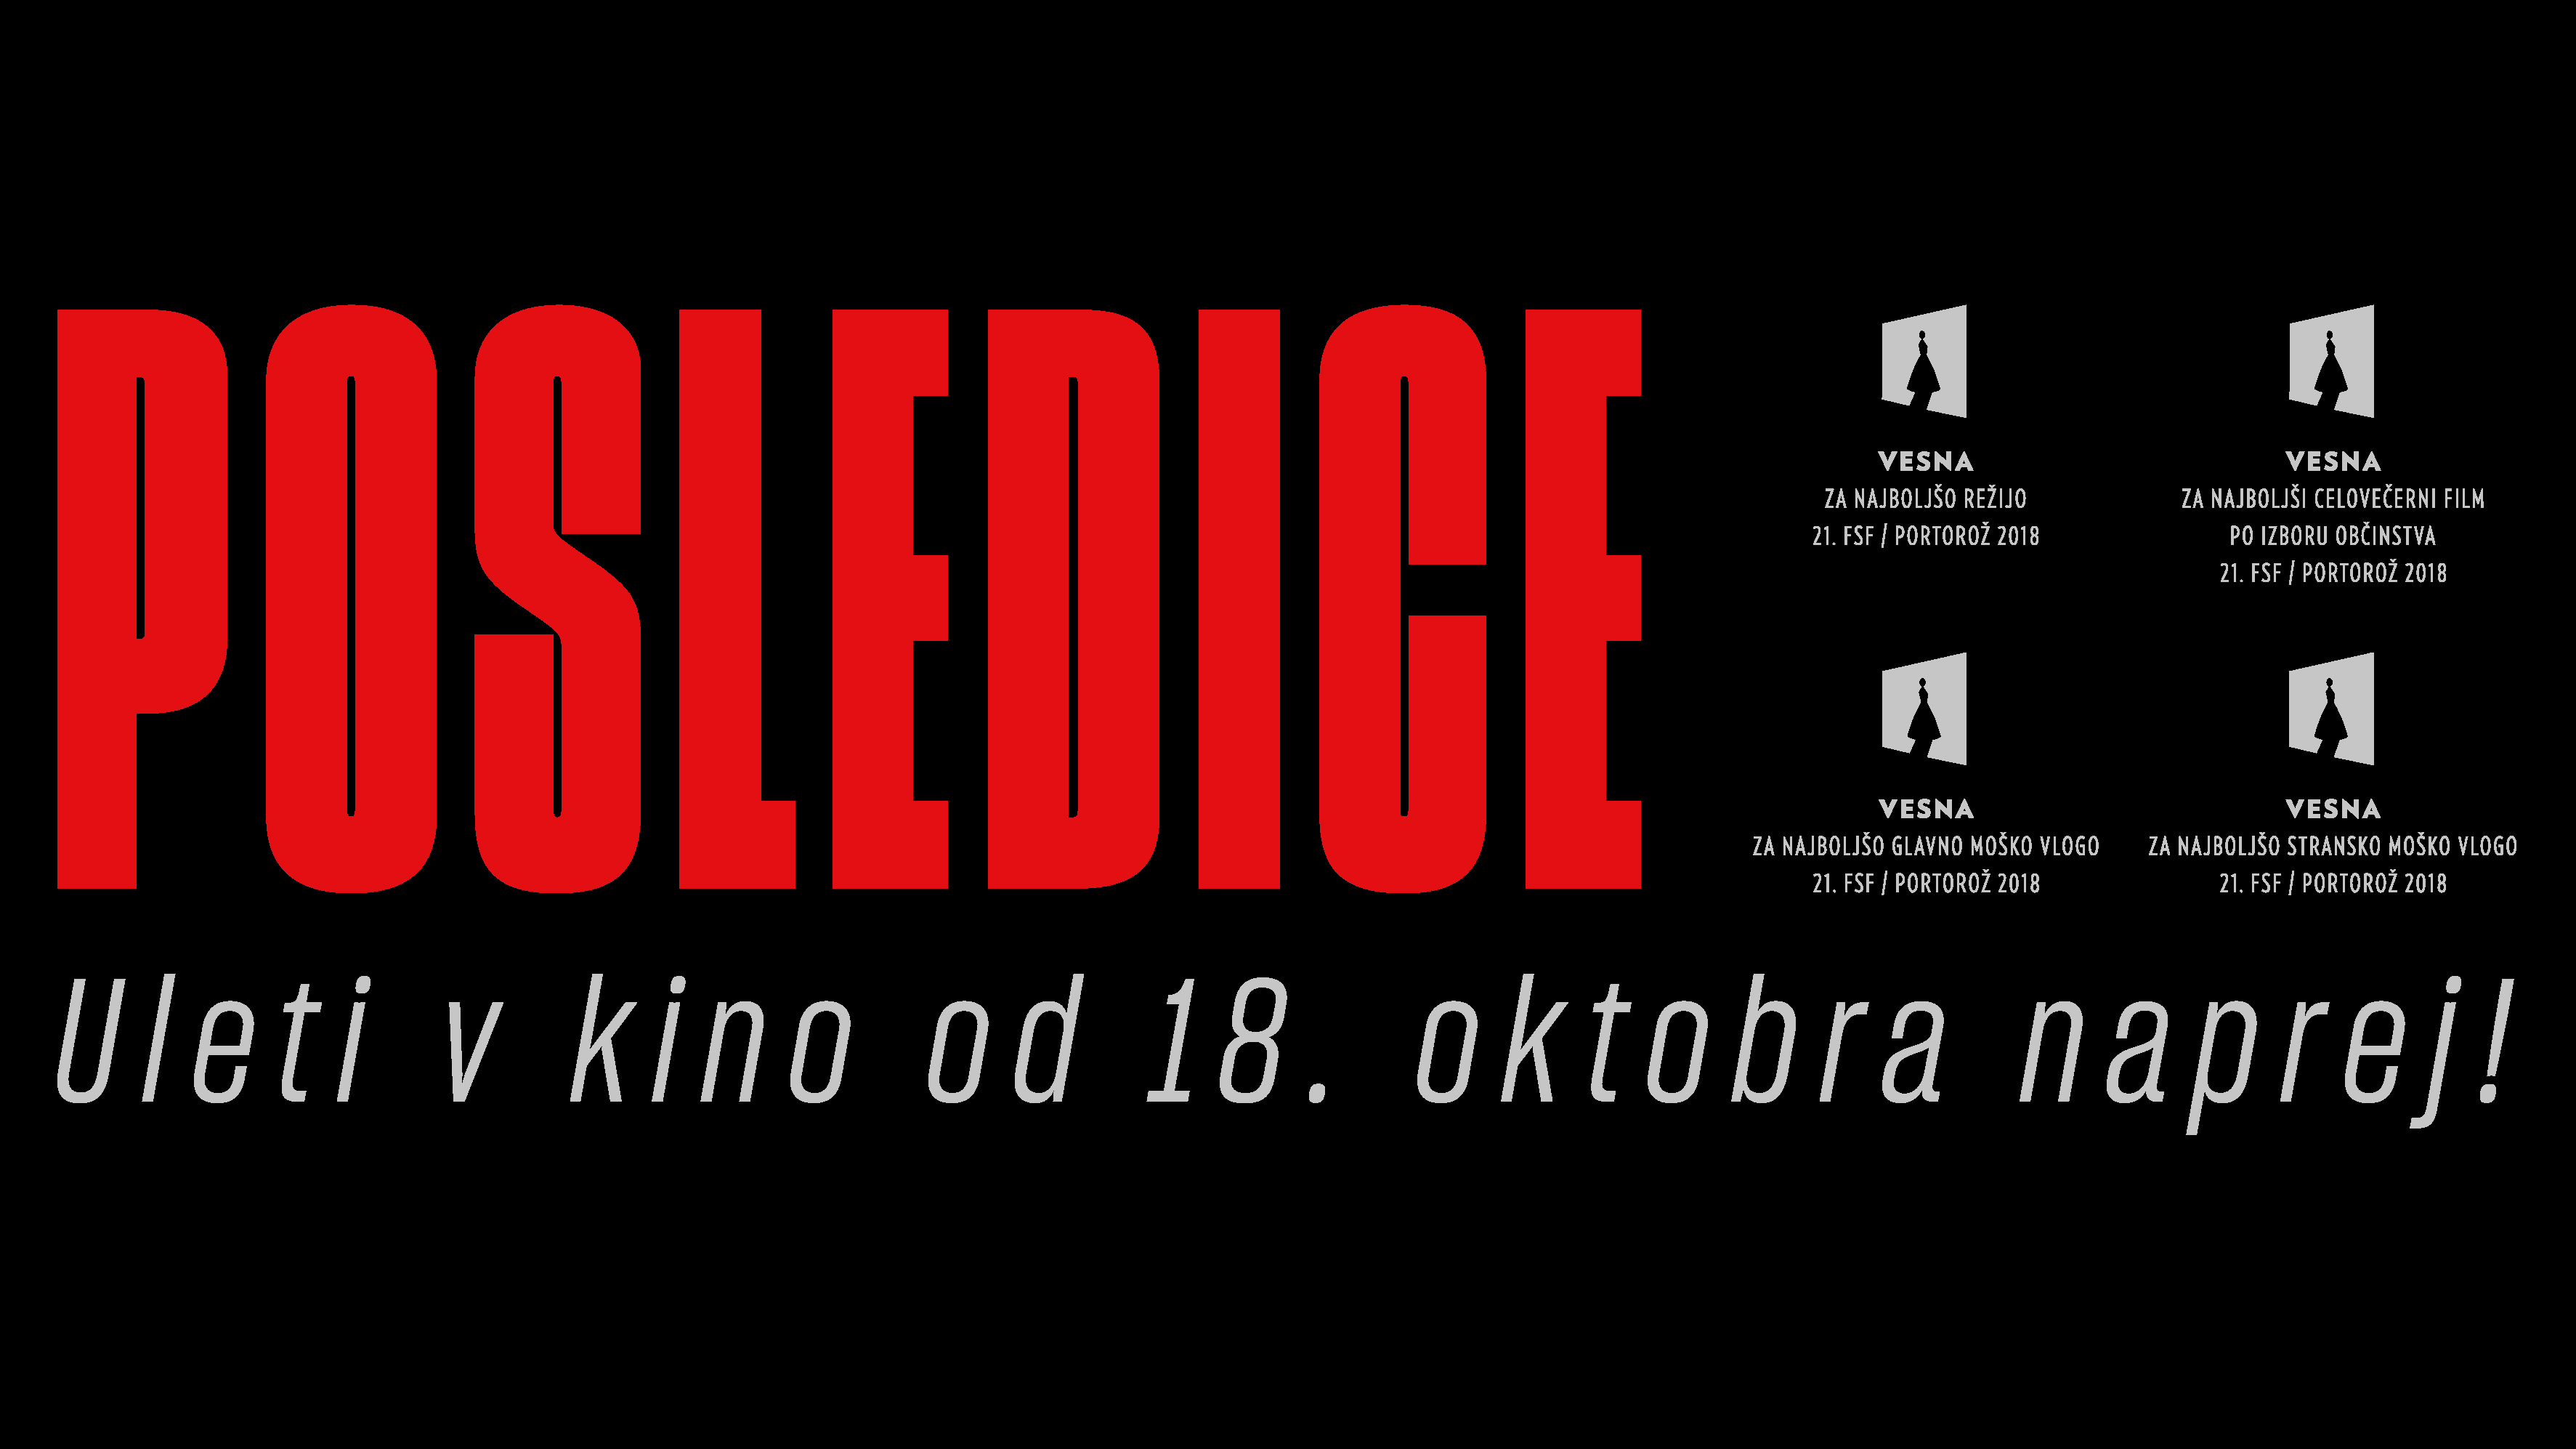 CONSEQUENCES wins 5 awards at the 21st Festival of Slovenian